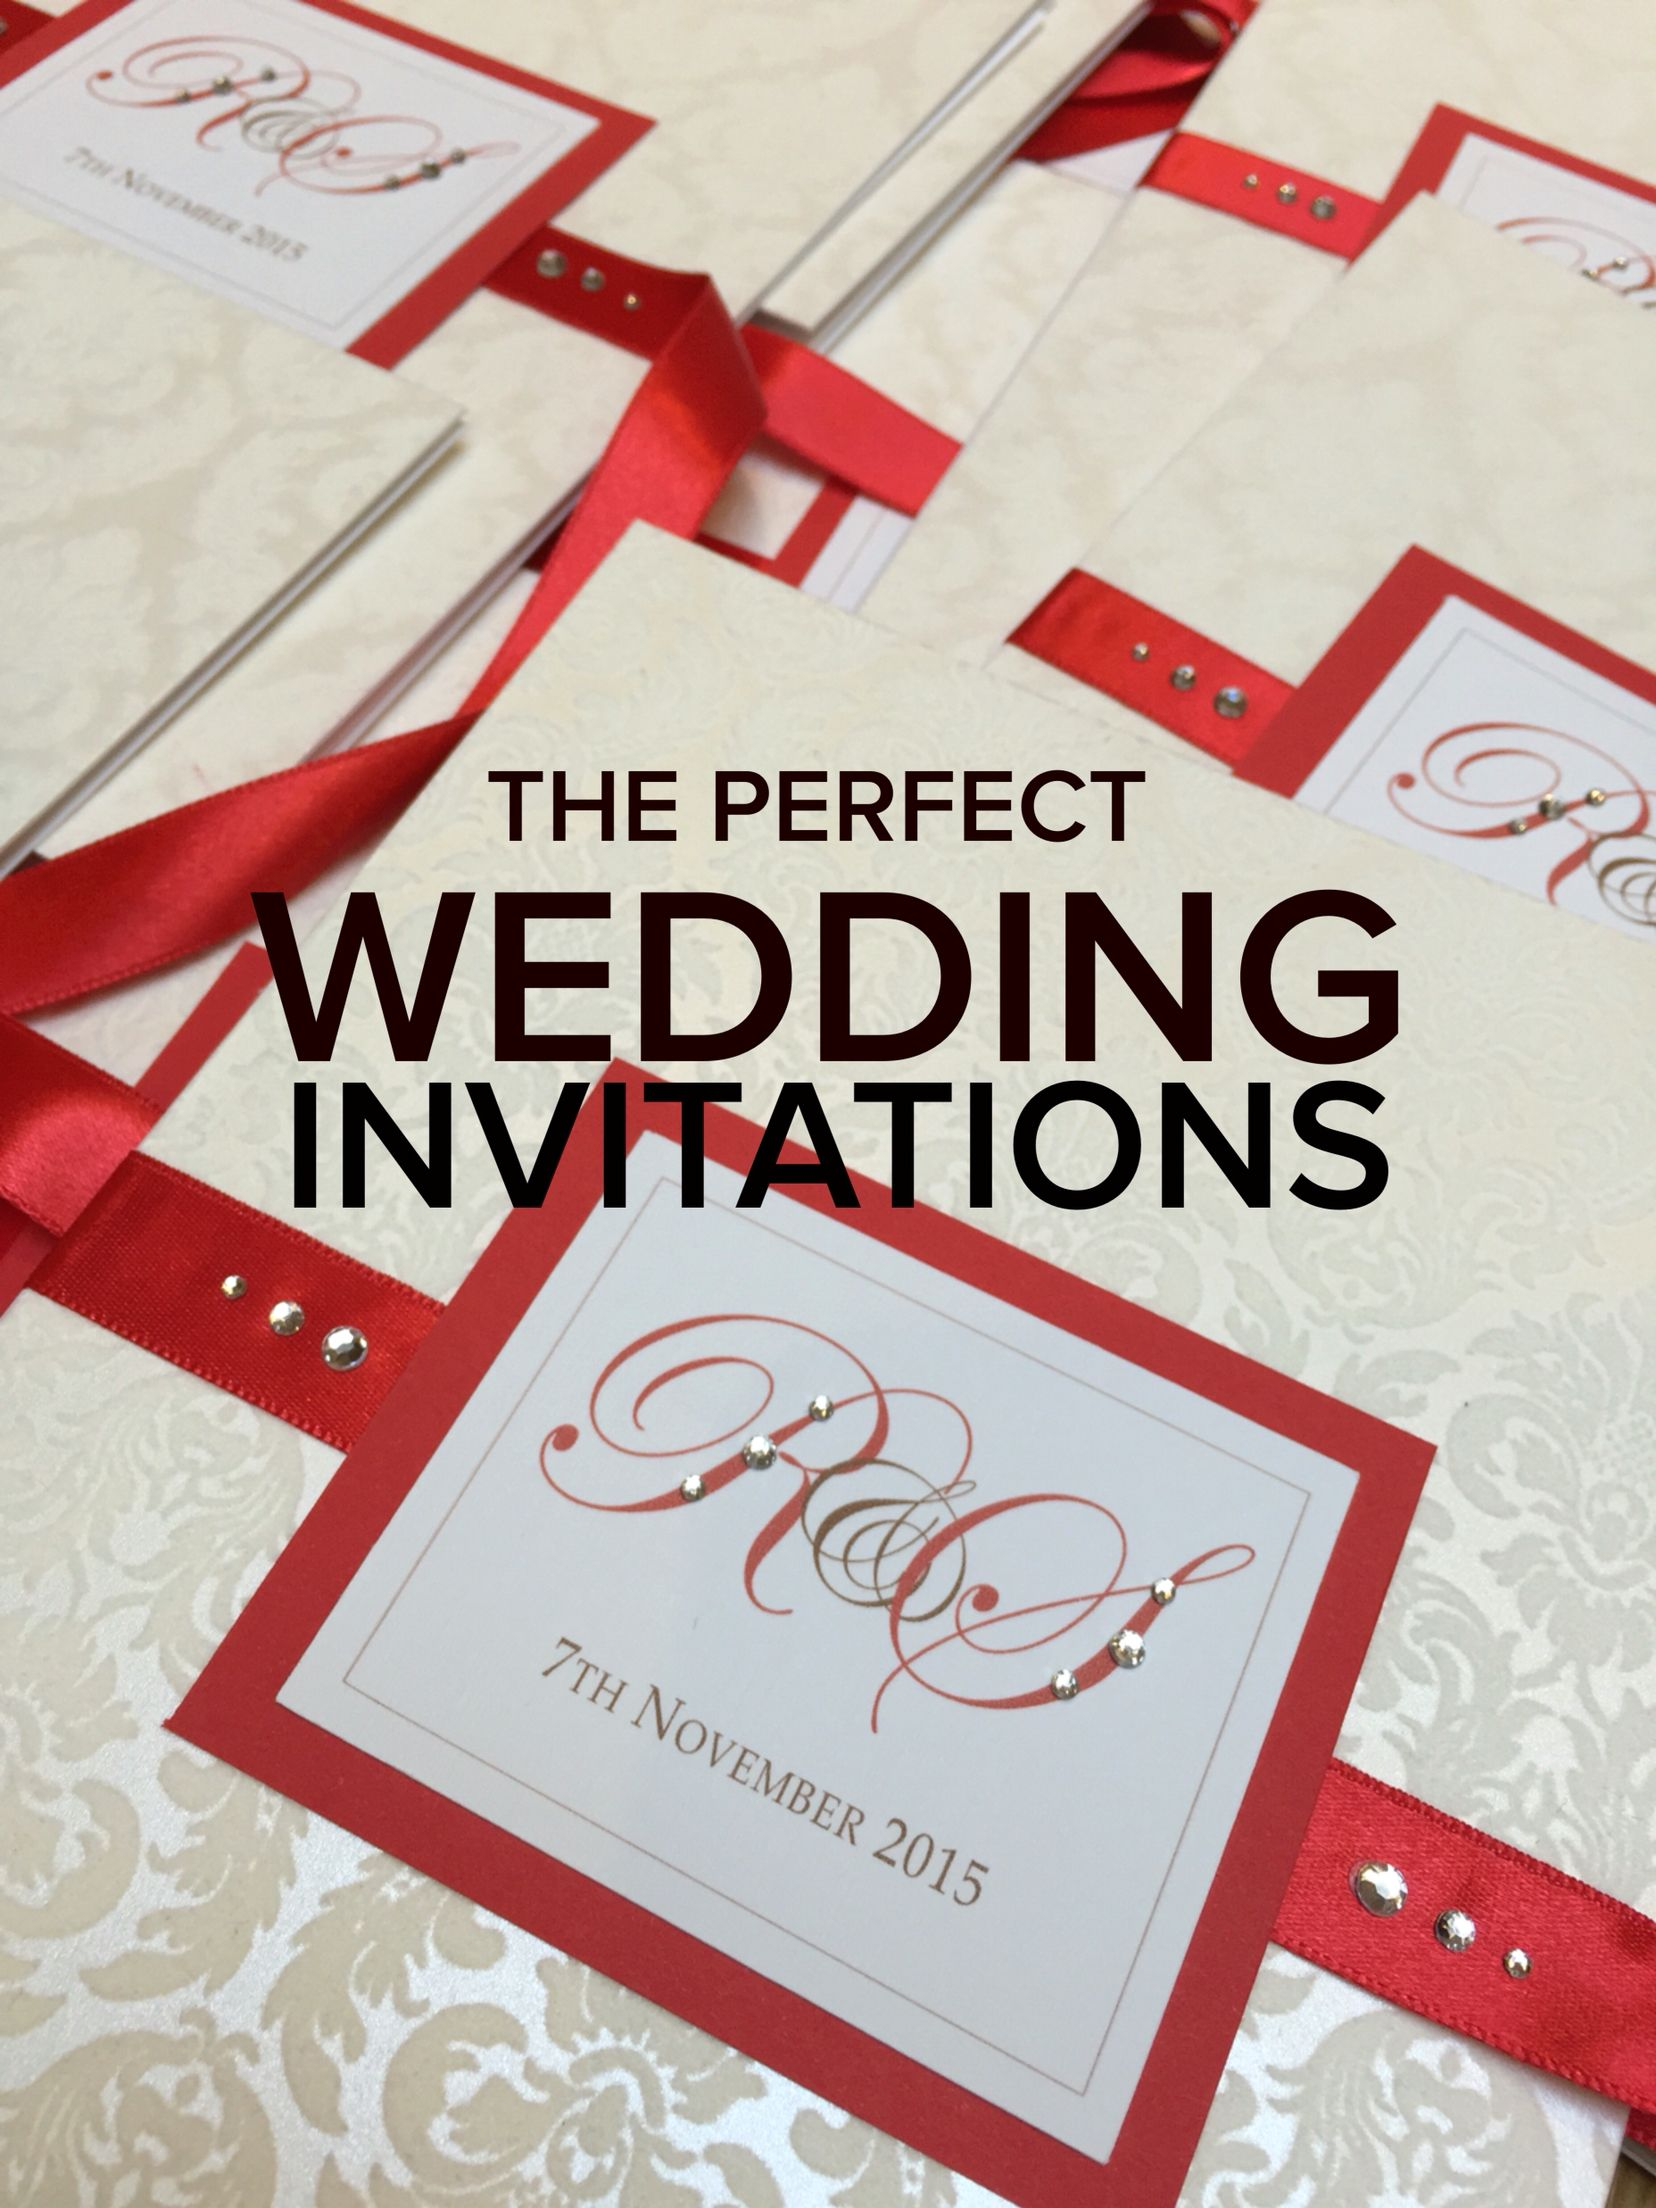 Best Quotes for Wedding Invitations | Lenq.me